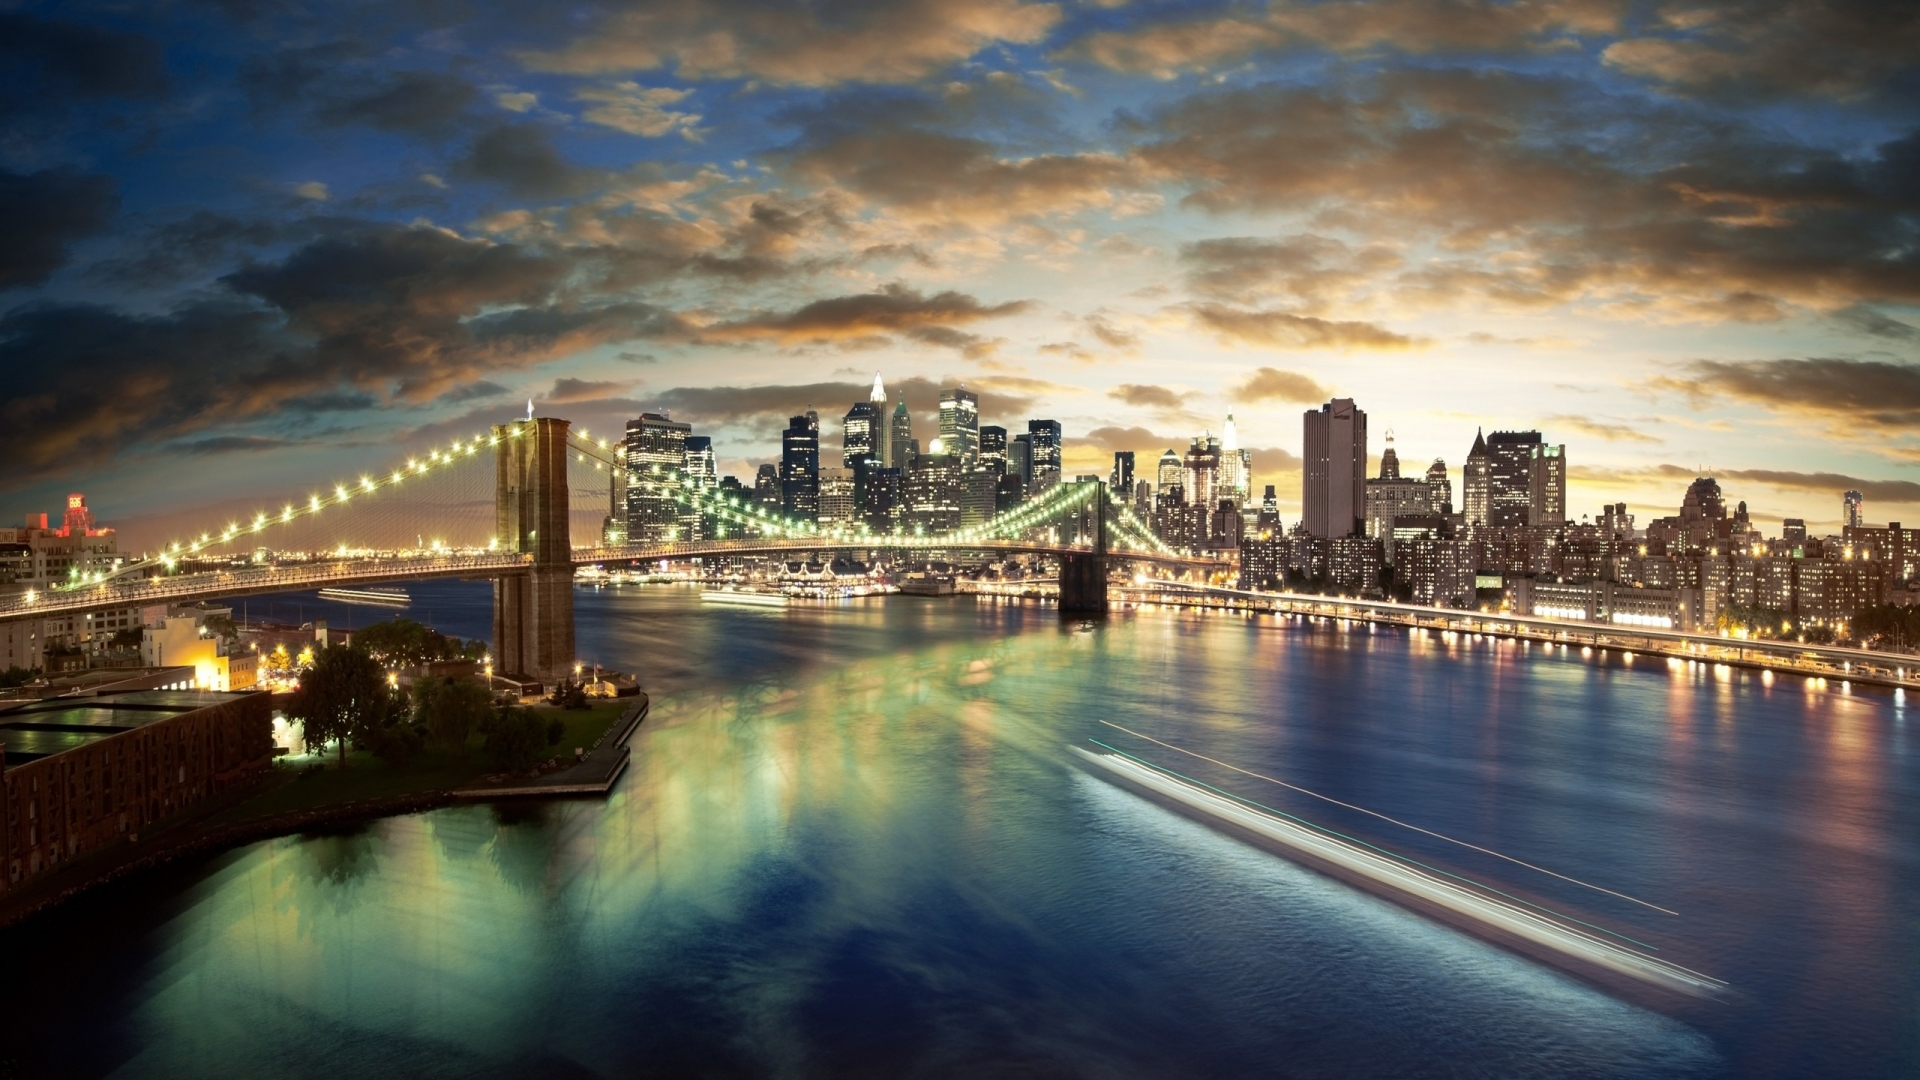 40 Hd New York City Wallpapersbackgrounds For Free Download